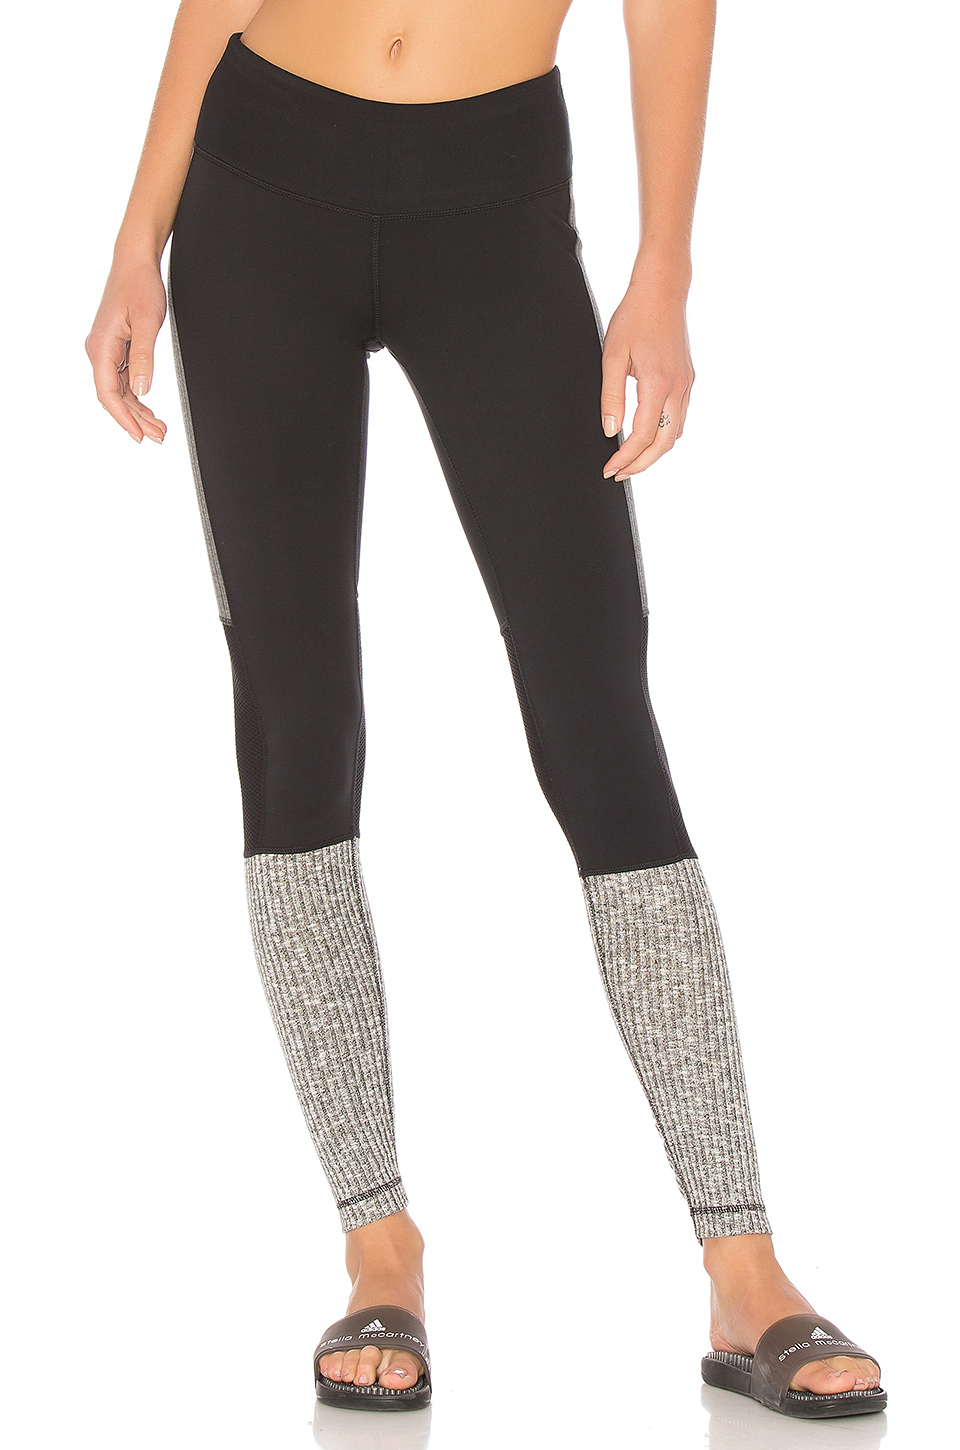 lukka lux Bring It Back Legging in Black Onyx